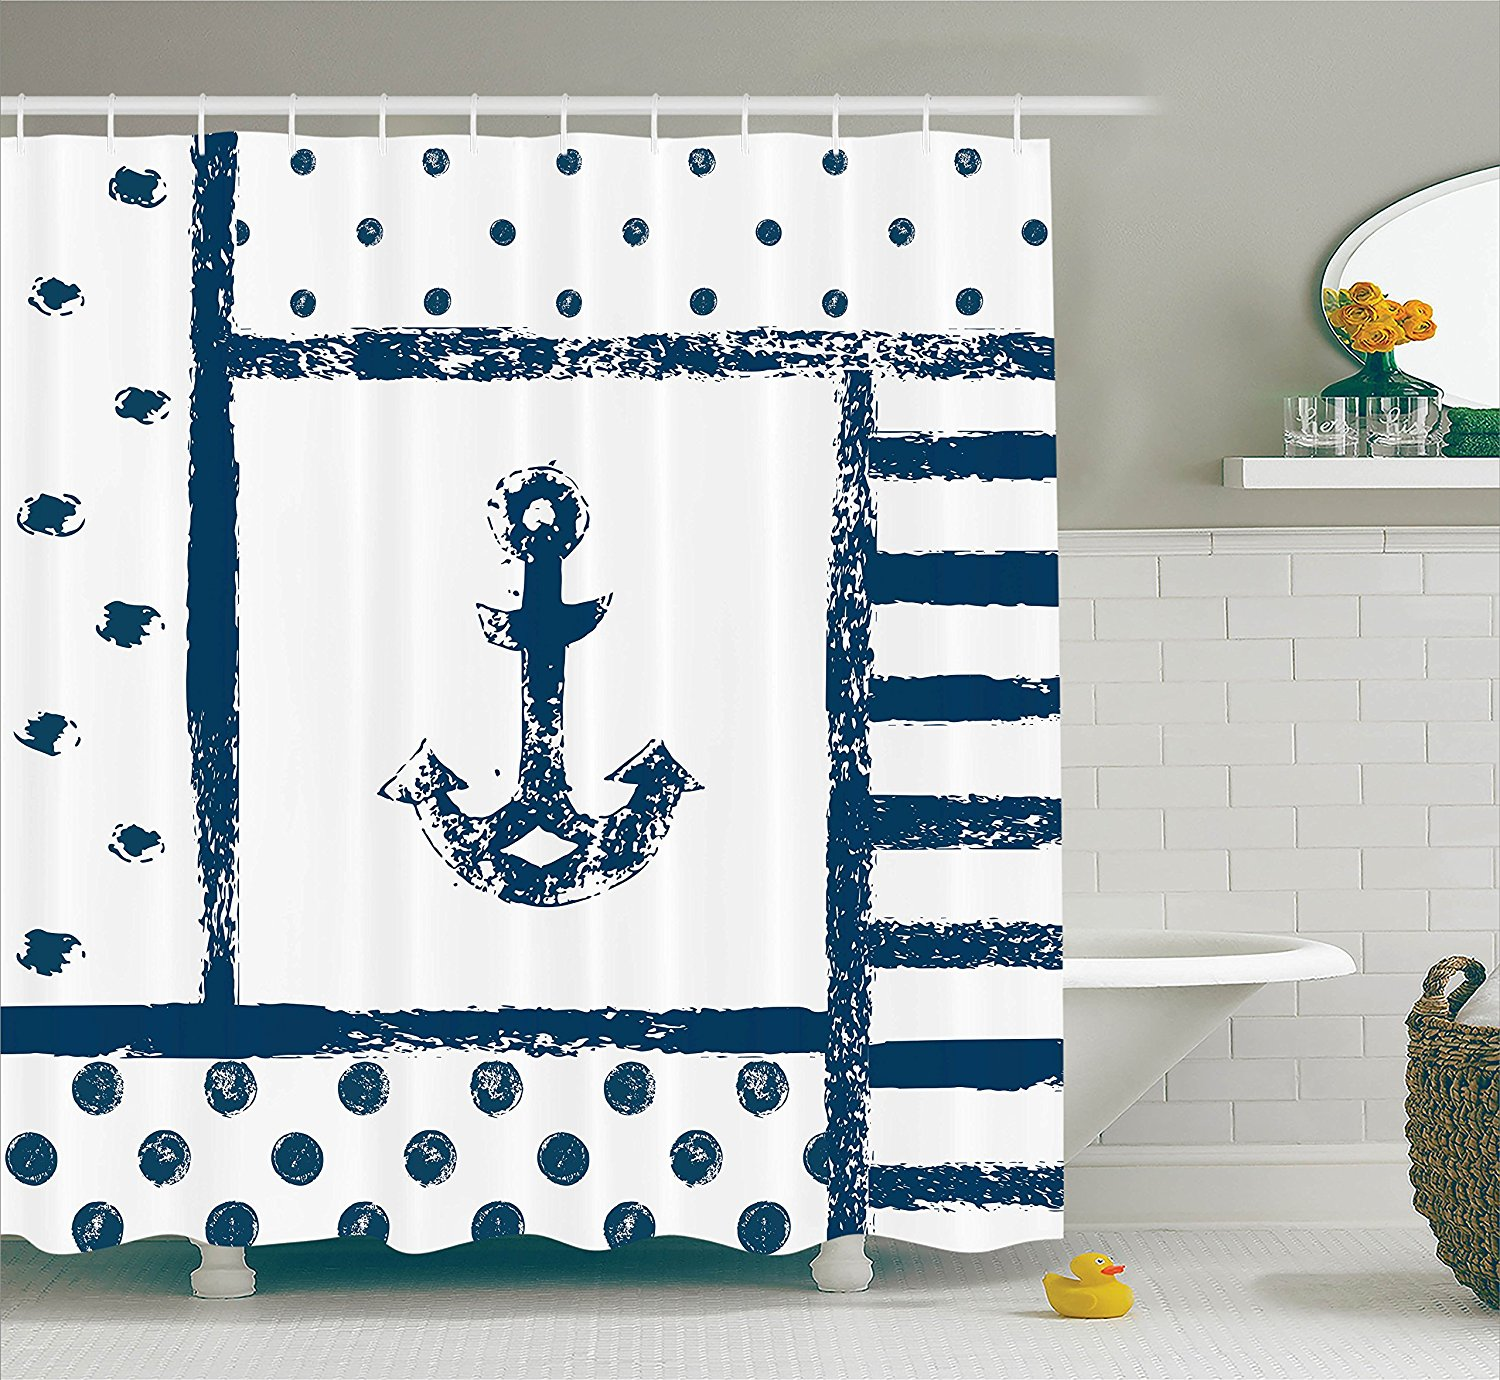 Anchor Decor Shower Curtain Set By Grunge Murk Boat Anchor Silhouette With Polka And Stripe Retro Patterns Navy Theme Bathroom Accessories 75 Inches By Ambesonne Walmart Com Walmart Com